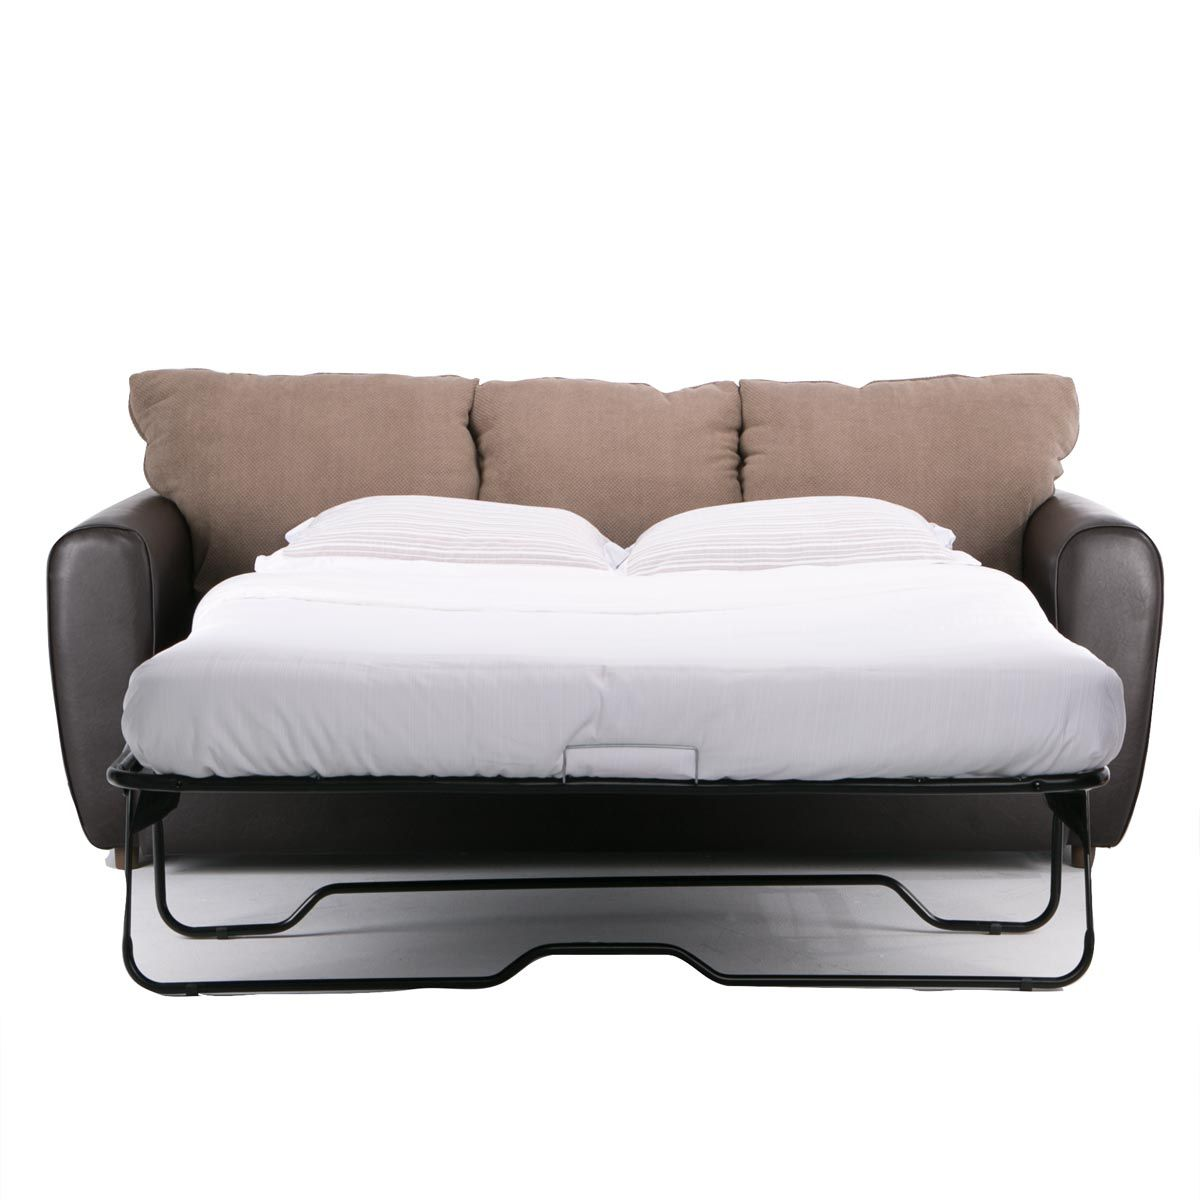 Sofa Bed Next Day Delivery London Moroso Redondo Queen Sleeper She Shed Ideas Pinterest Jerome S Has A Large Selection Of Affordable Sofas With Same